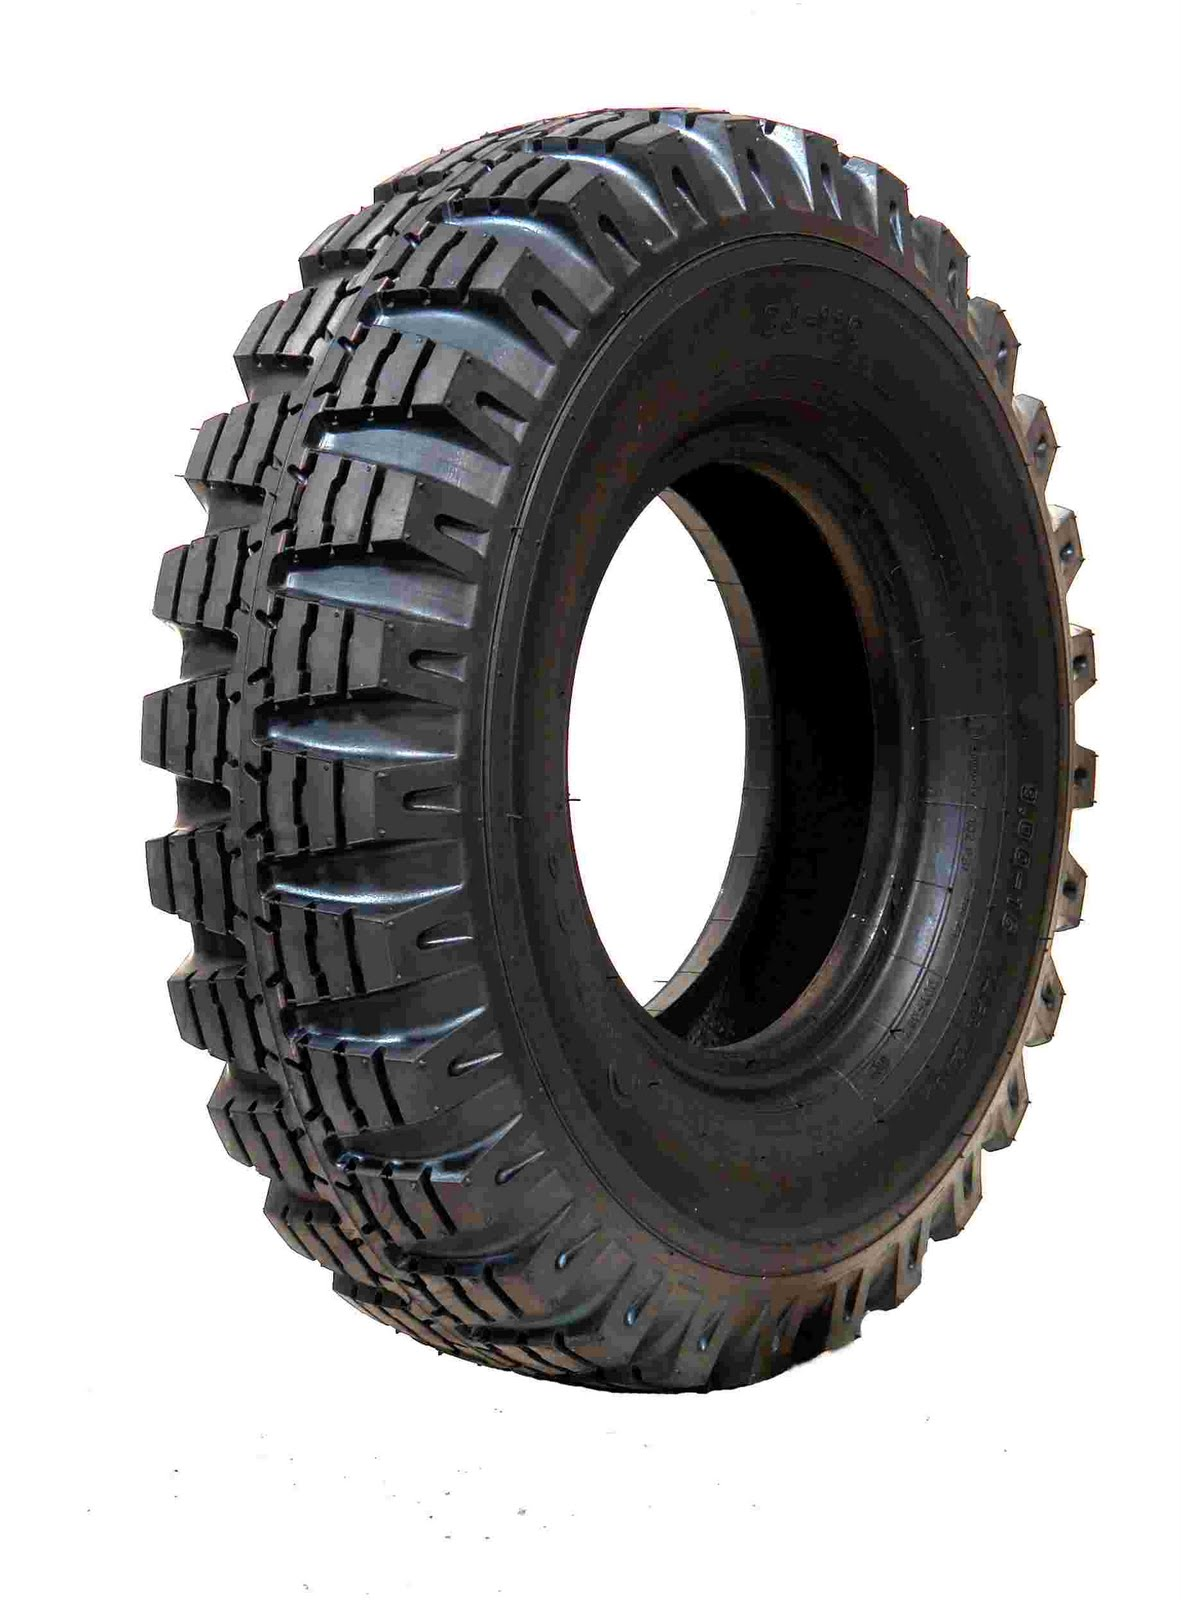 Vintage Tyres Camac Tyres Are Back